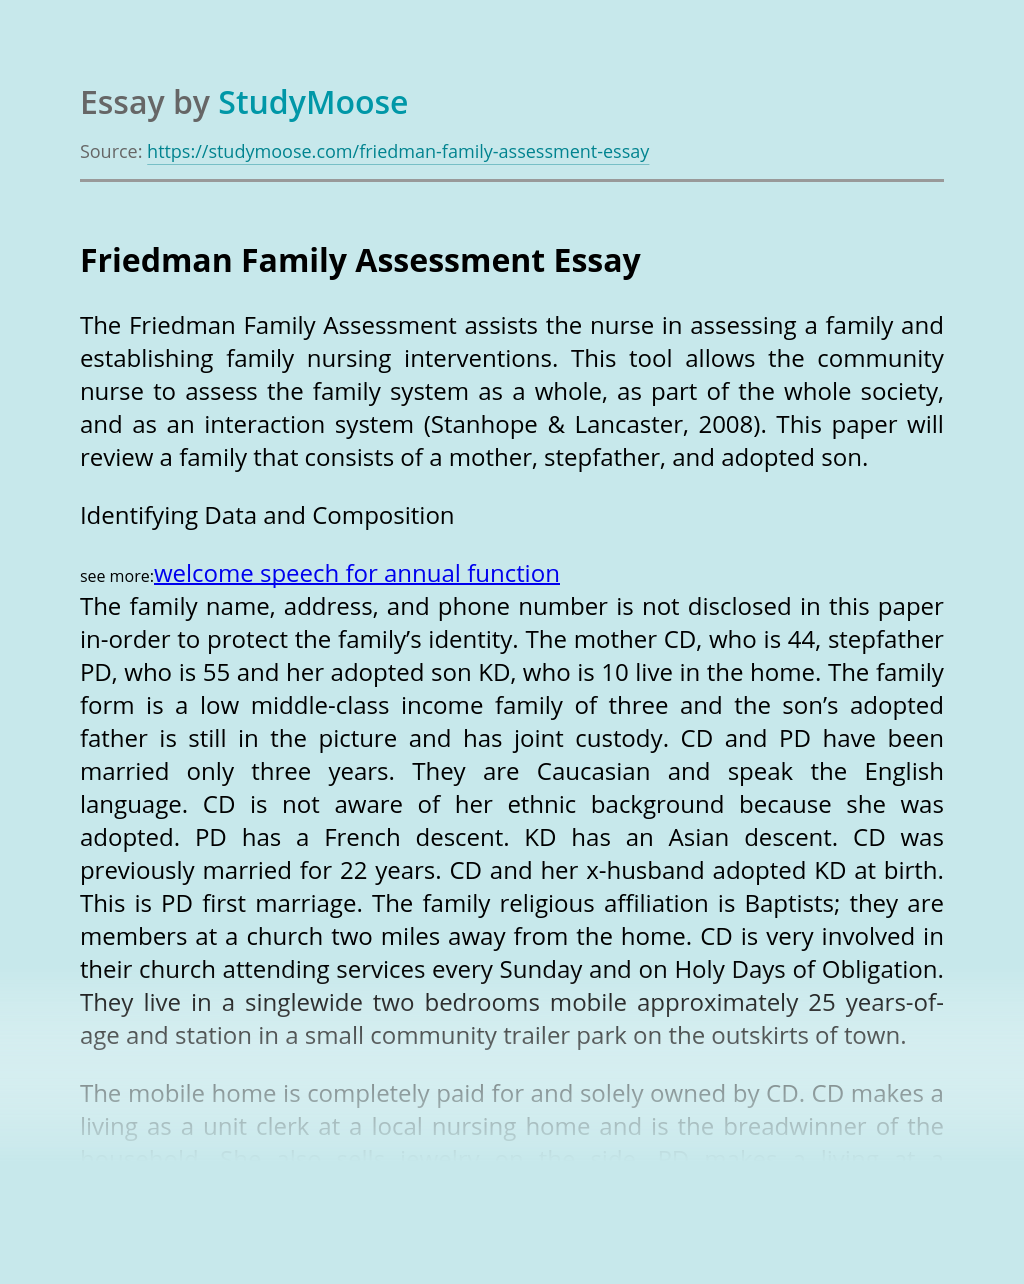 Friedman Family Assessment